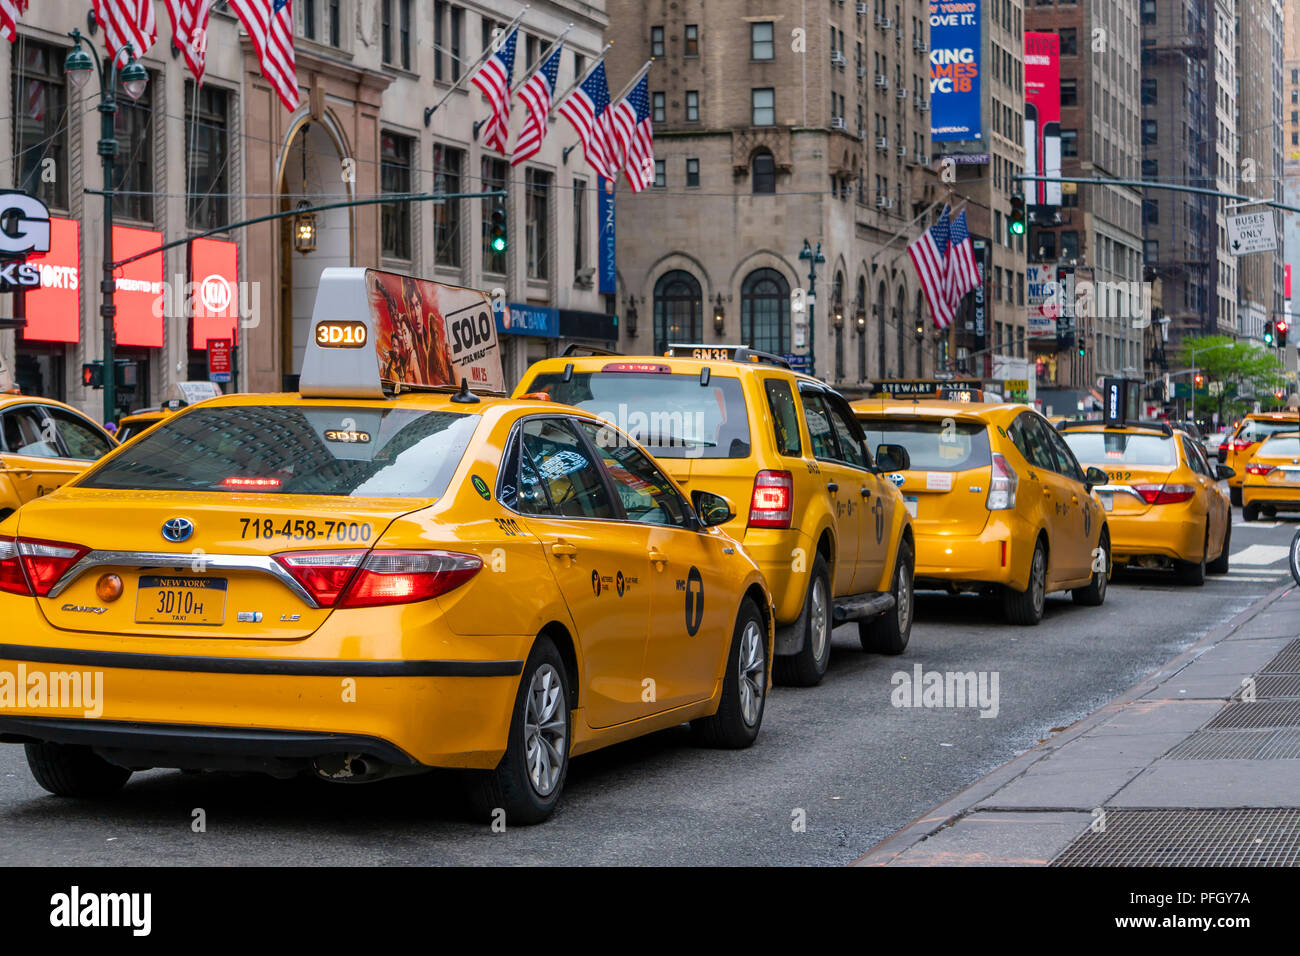 Les taxis jaunes à New York City Photo Stock